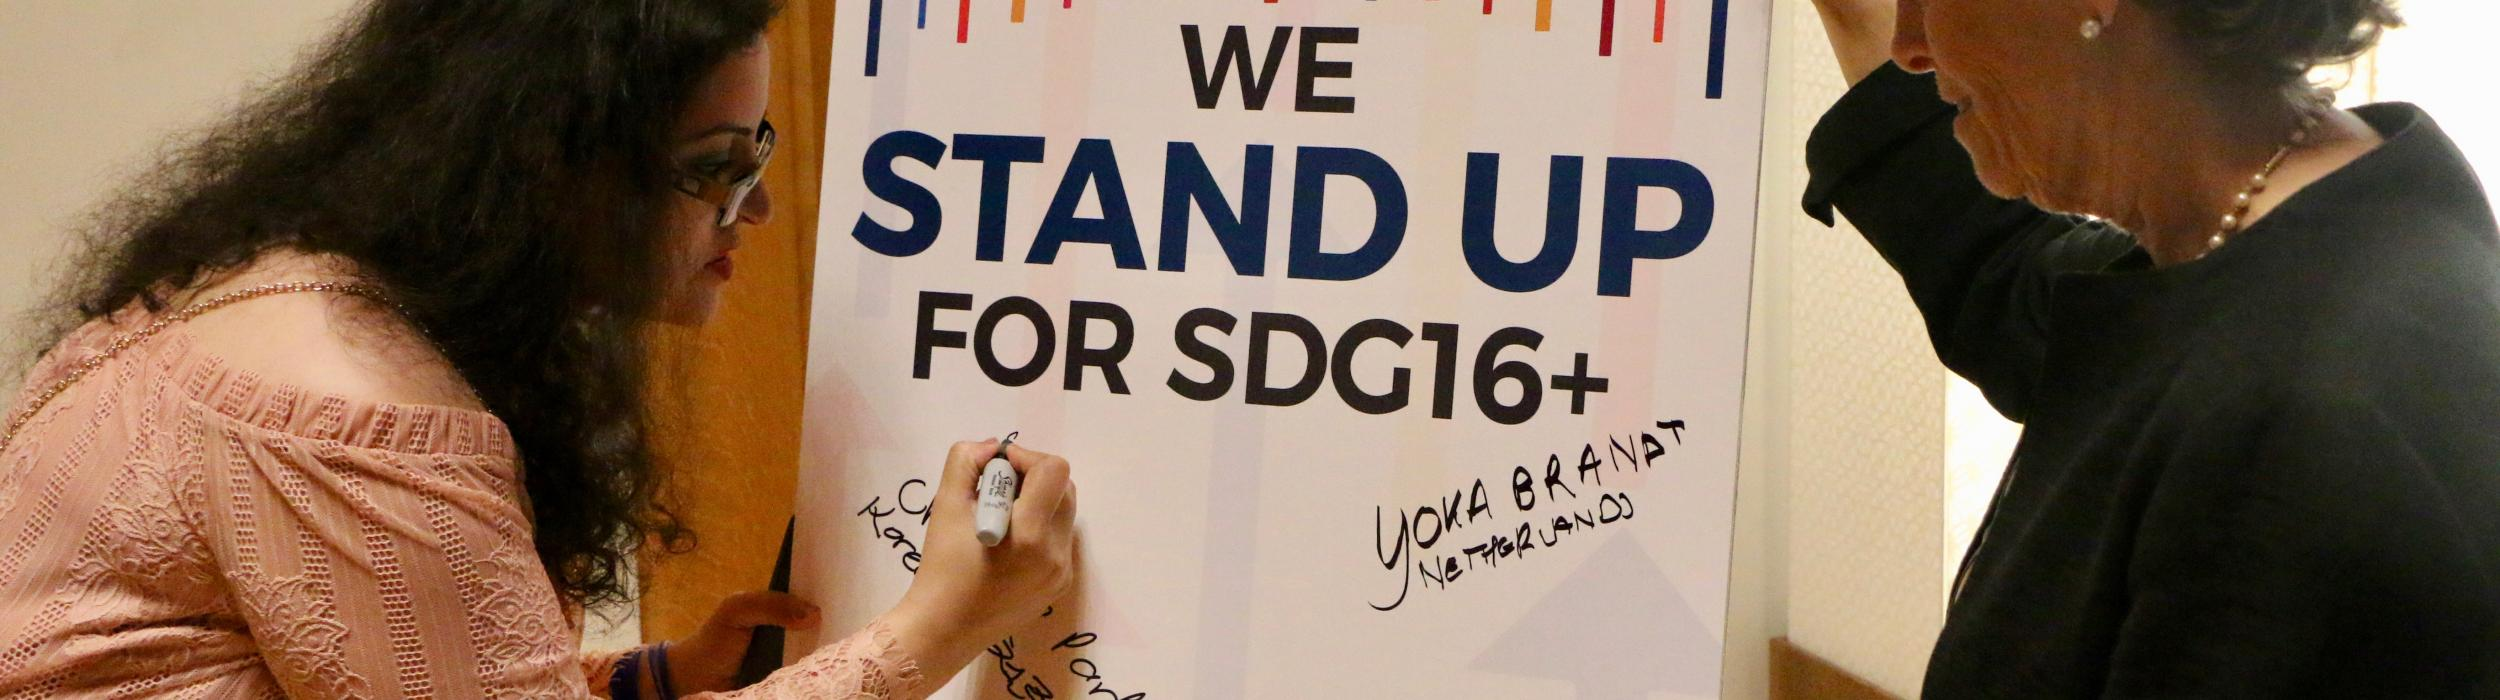 Stand Up for SDG 16+